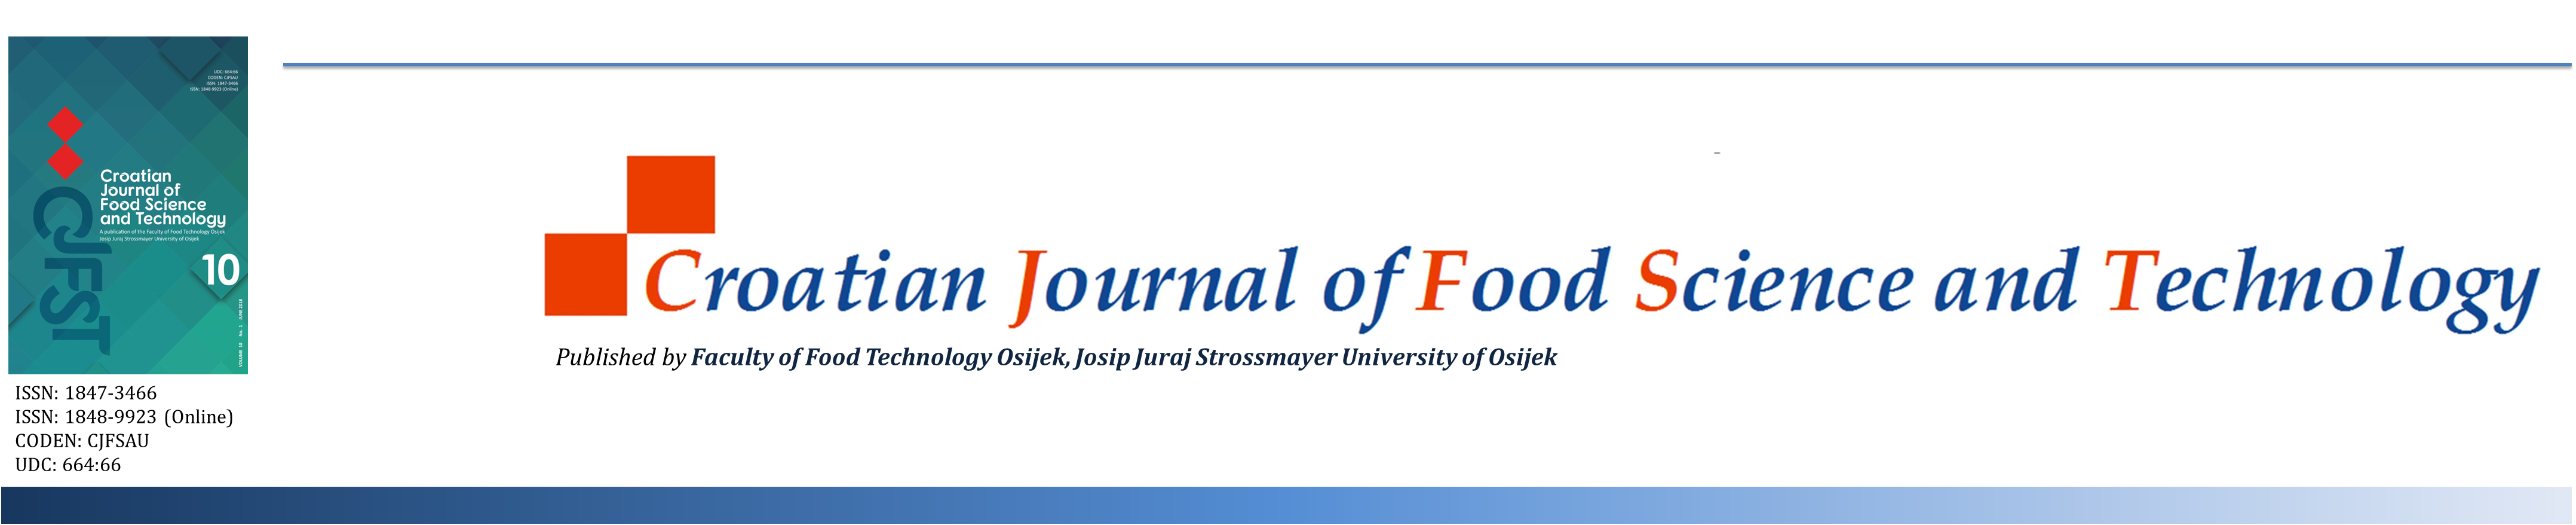 Croatian Journal of Food Science and Technology